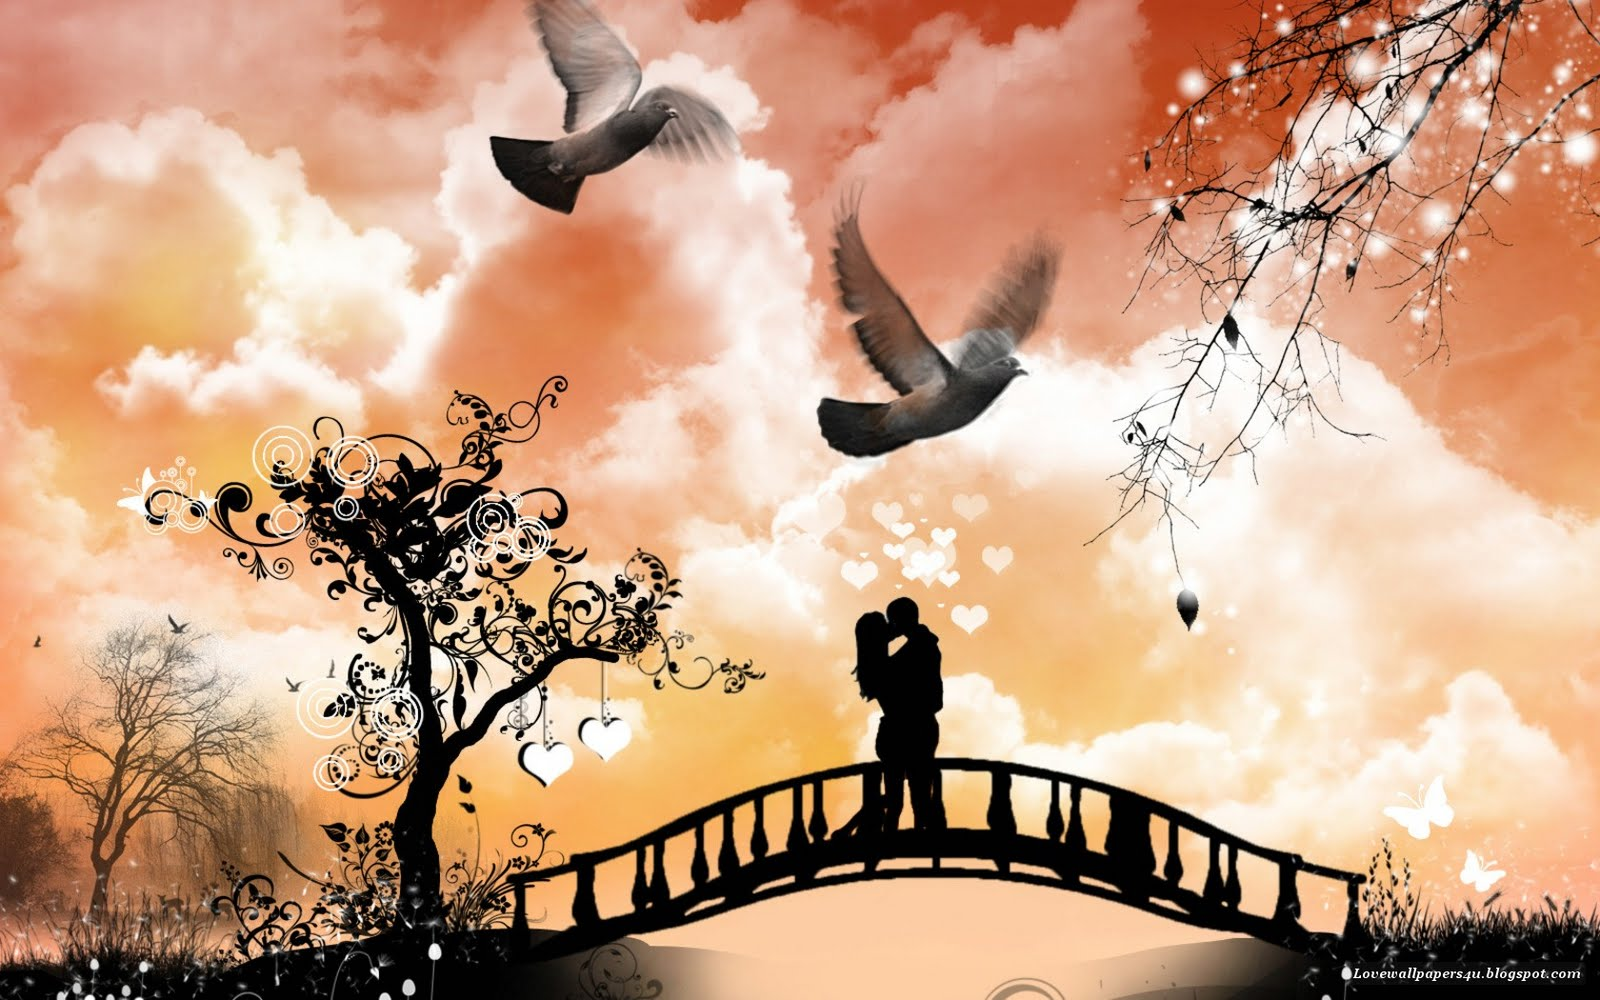 Images Of Love Hd Wallpaper : iWallpapers: LOVE WALLPAPERS HD